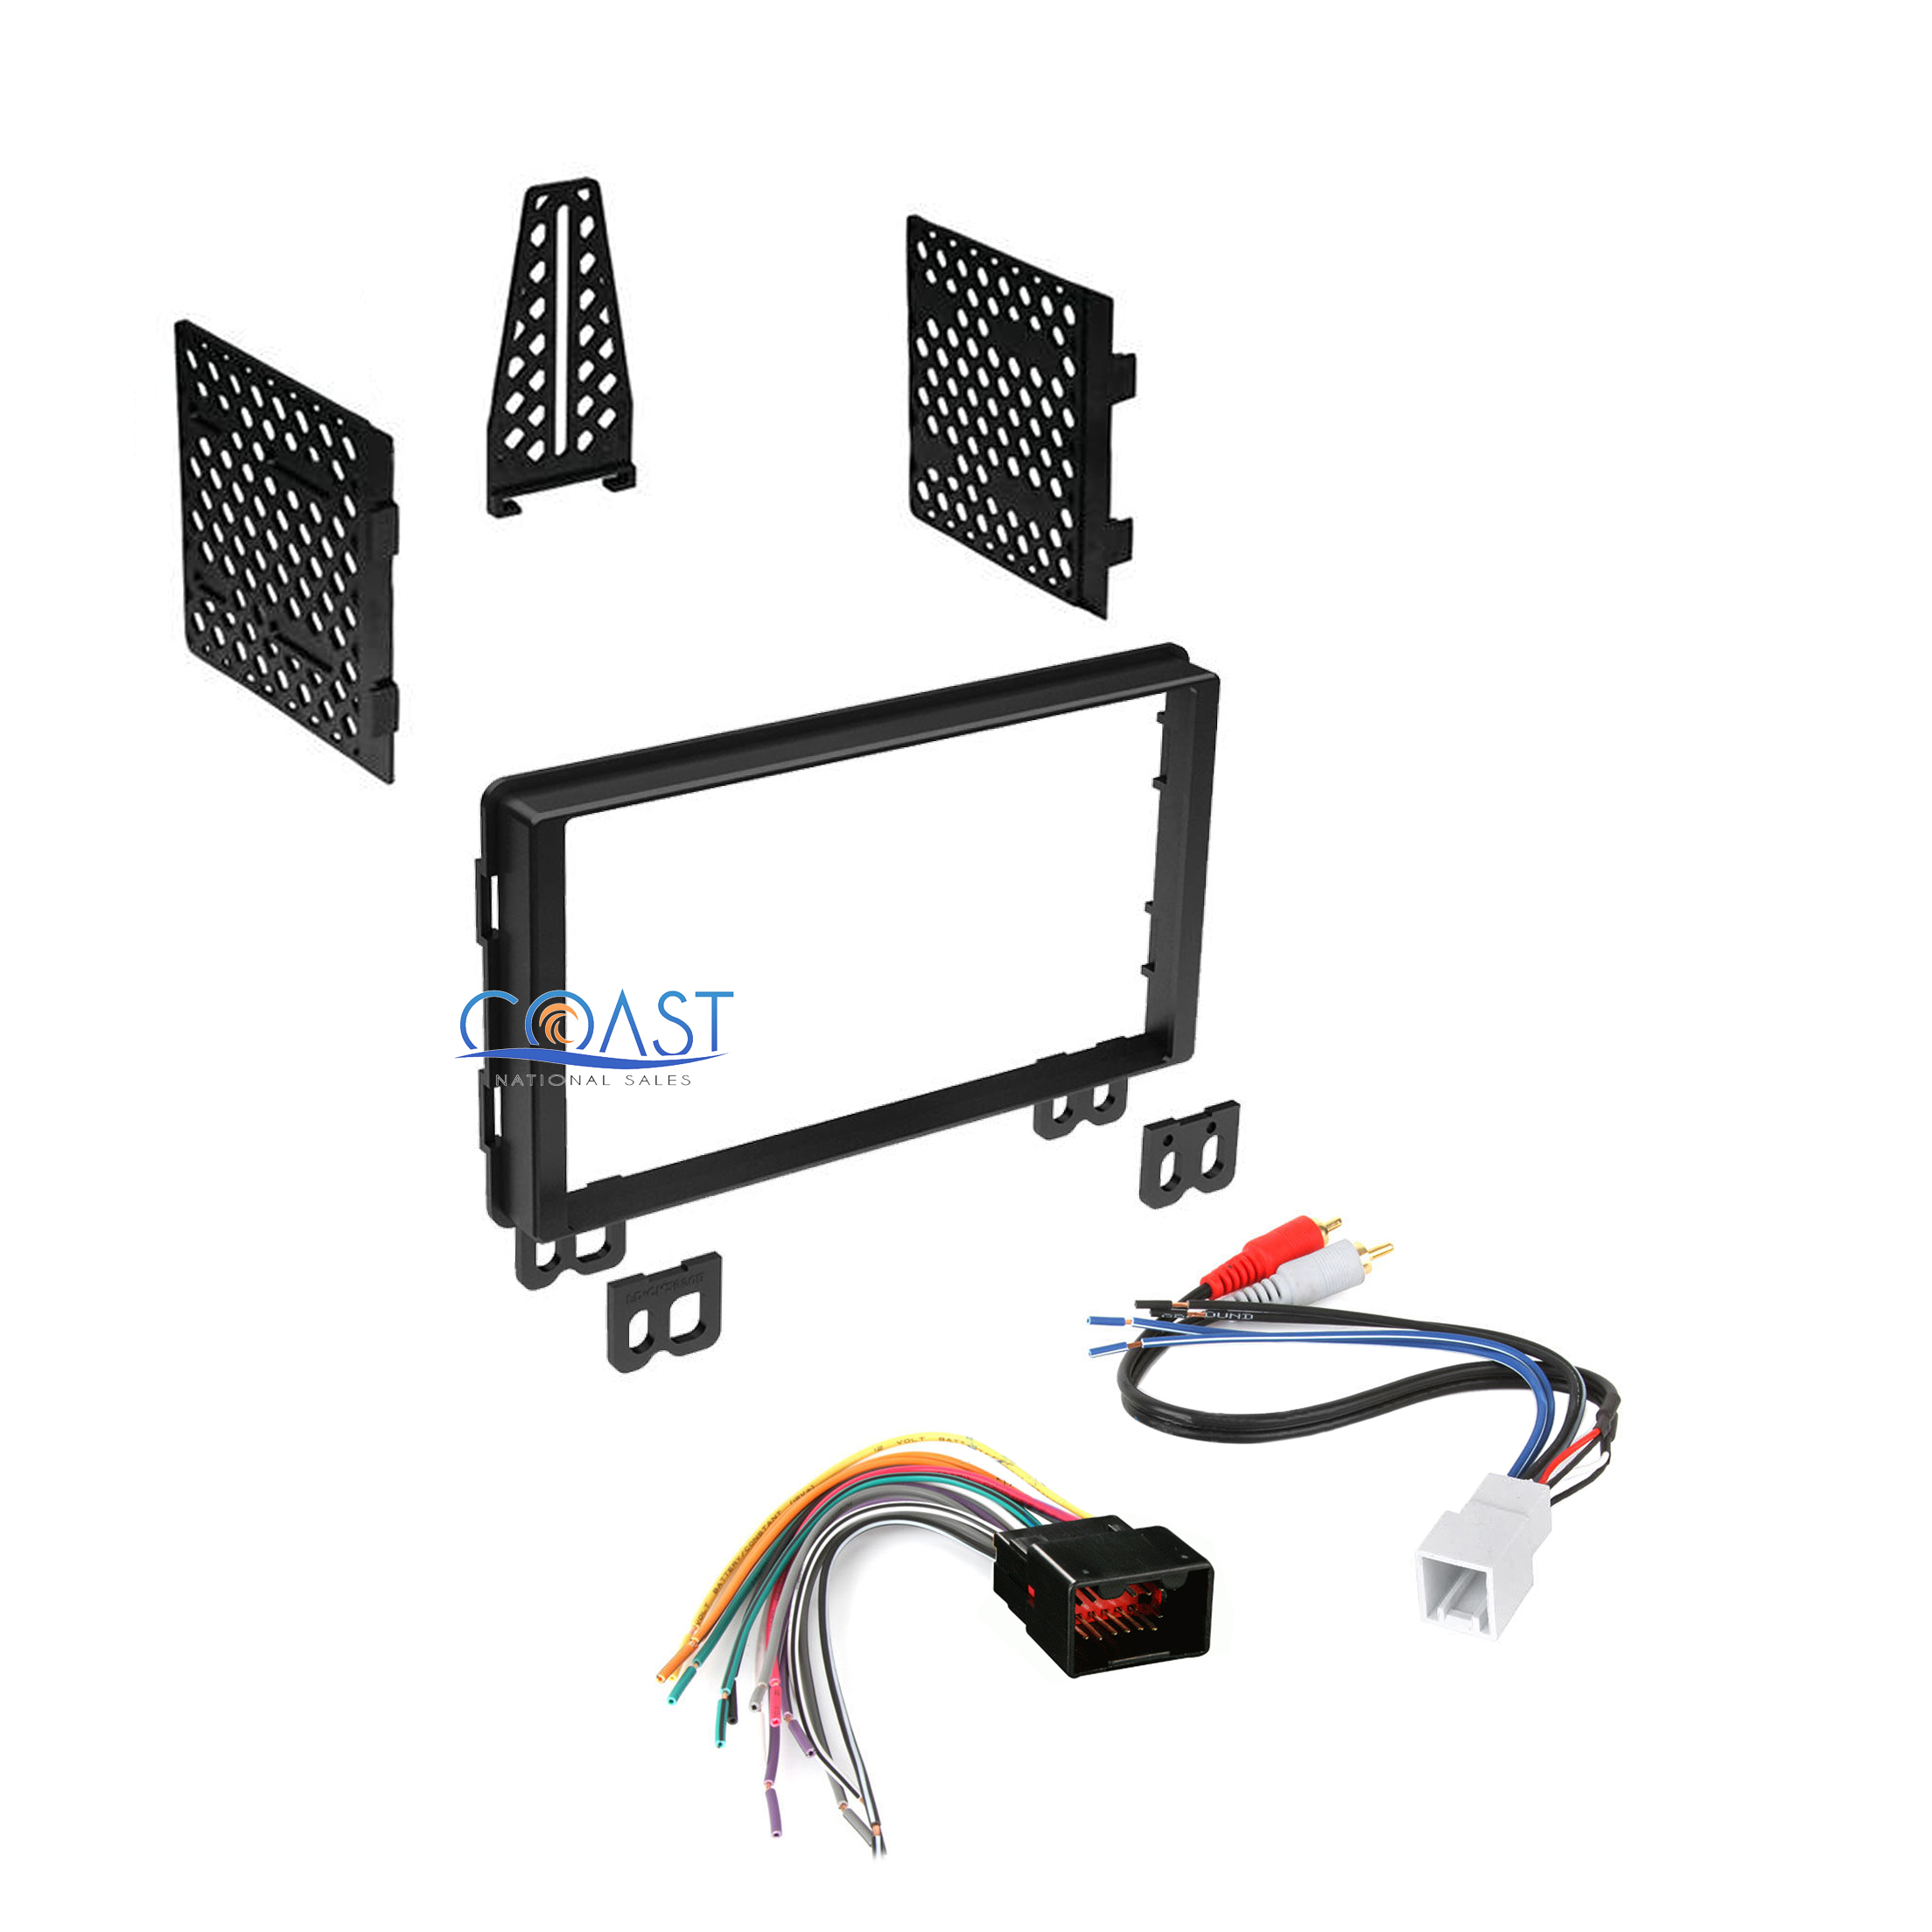 Double DIN Car Radio Stereo Dash Kit Harness for 2001-06